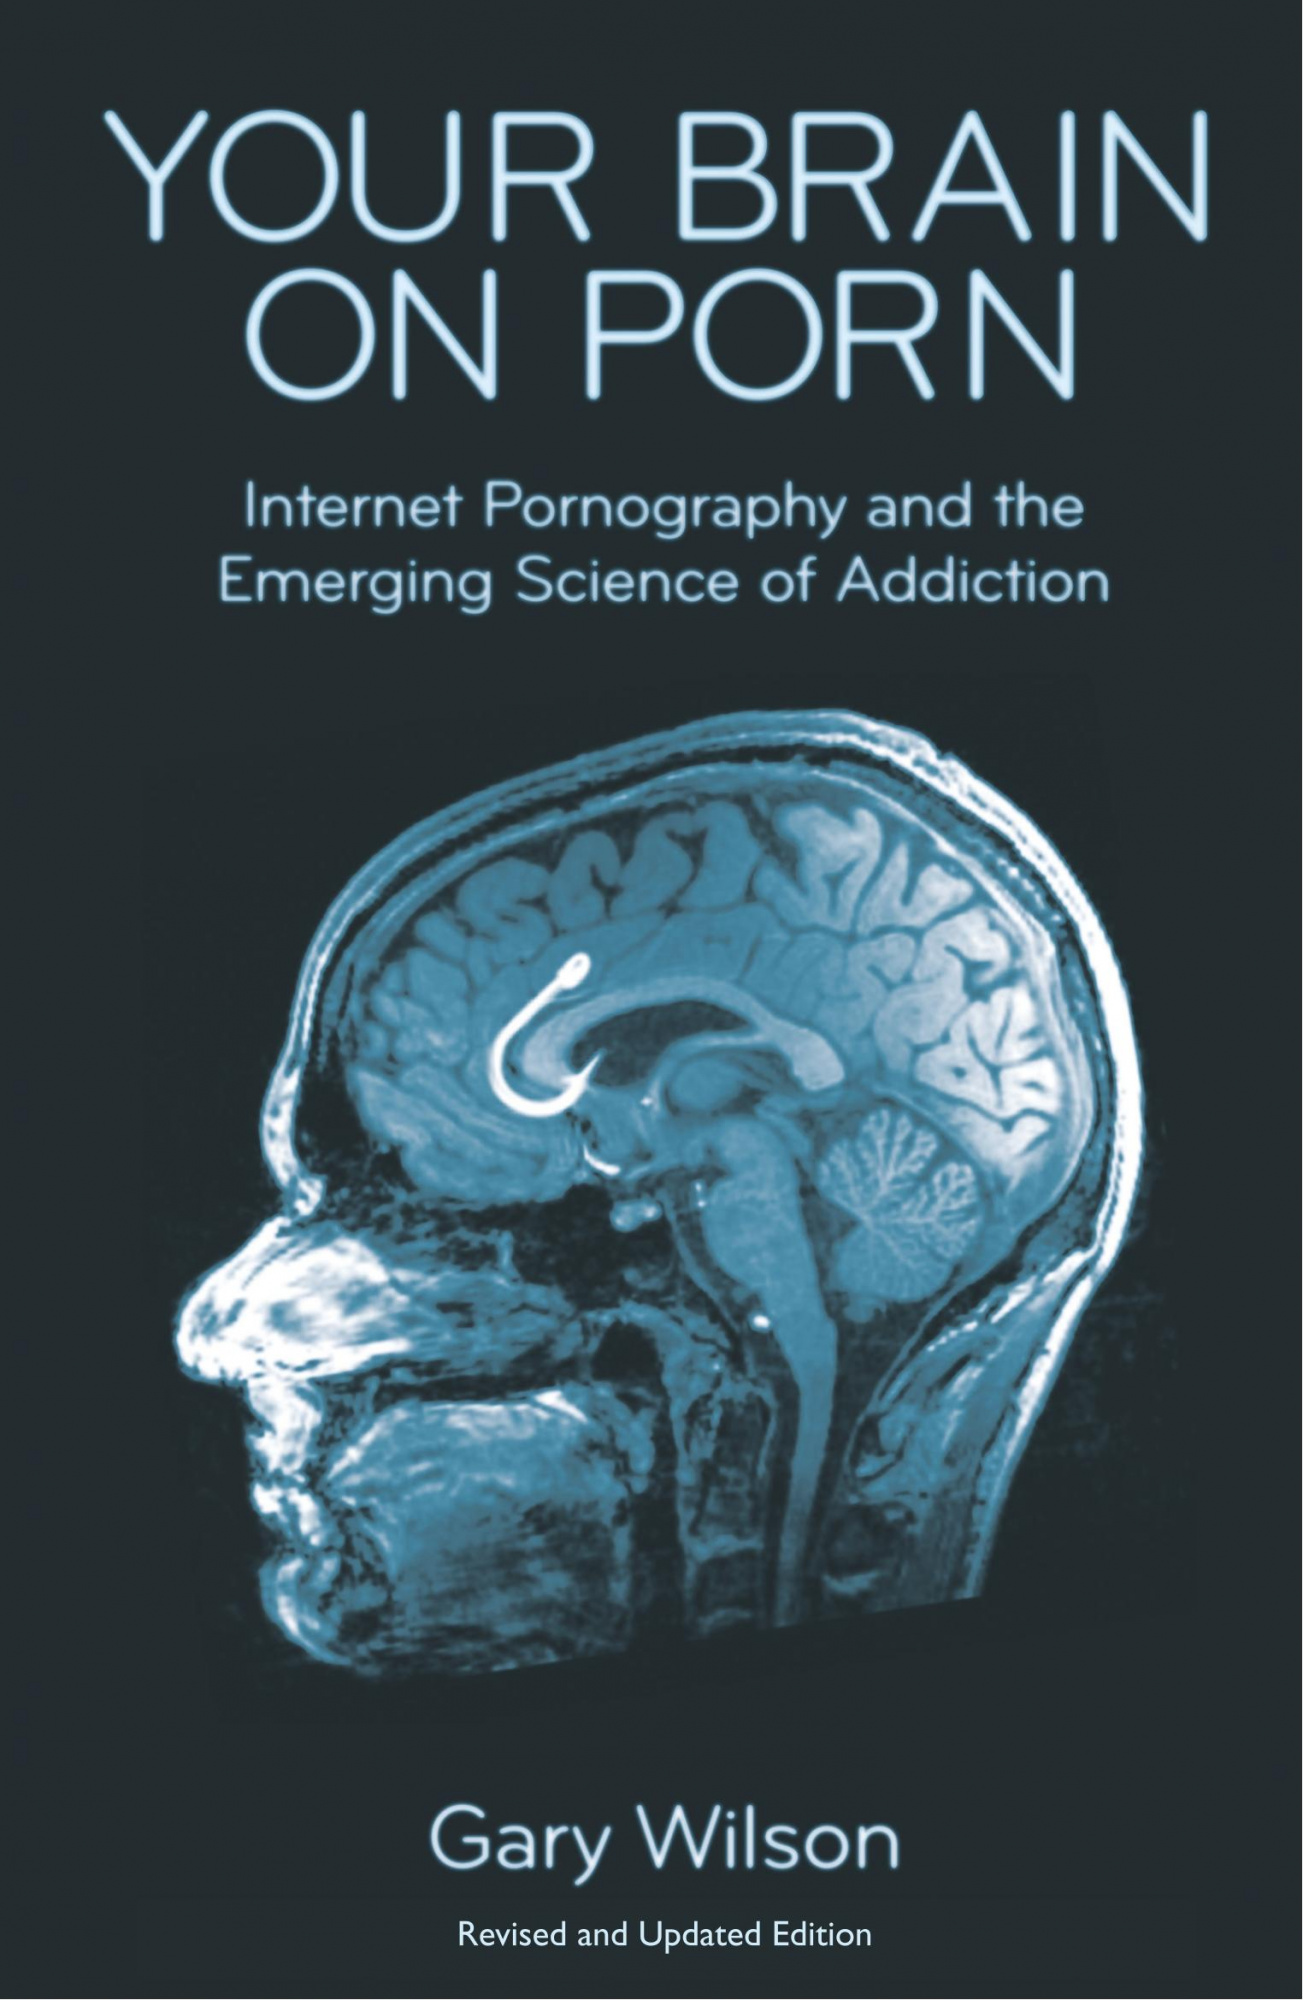 Your Brain on Porn: Internet Pornography and the Emerging Science of Addiction by Gary Wilson, ISBN: 9780993161605